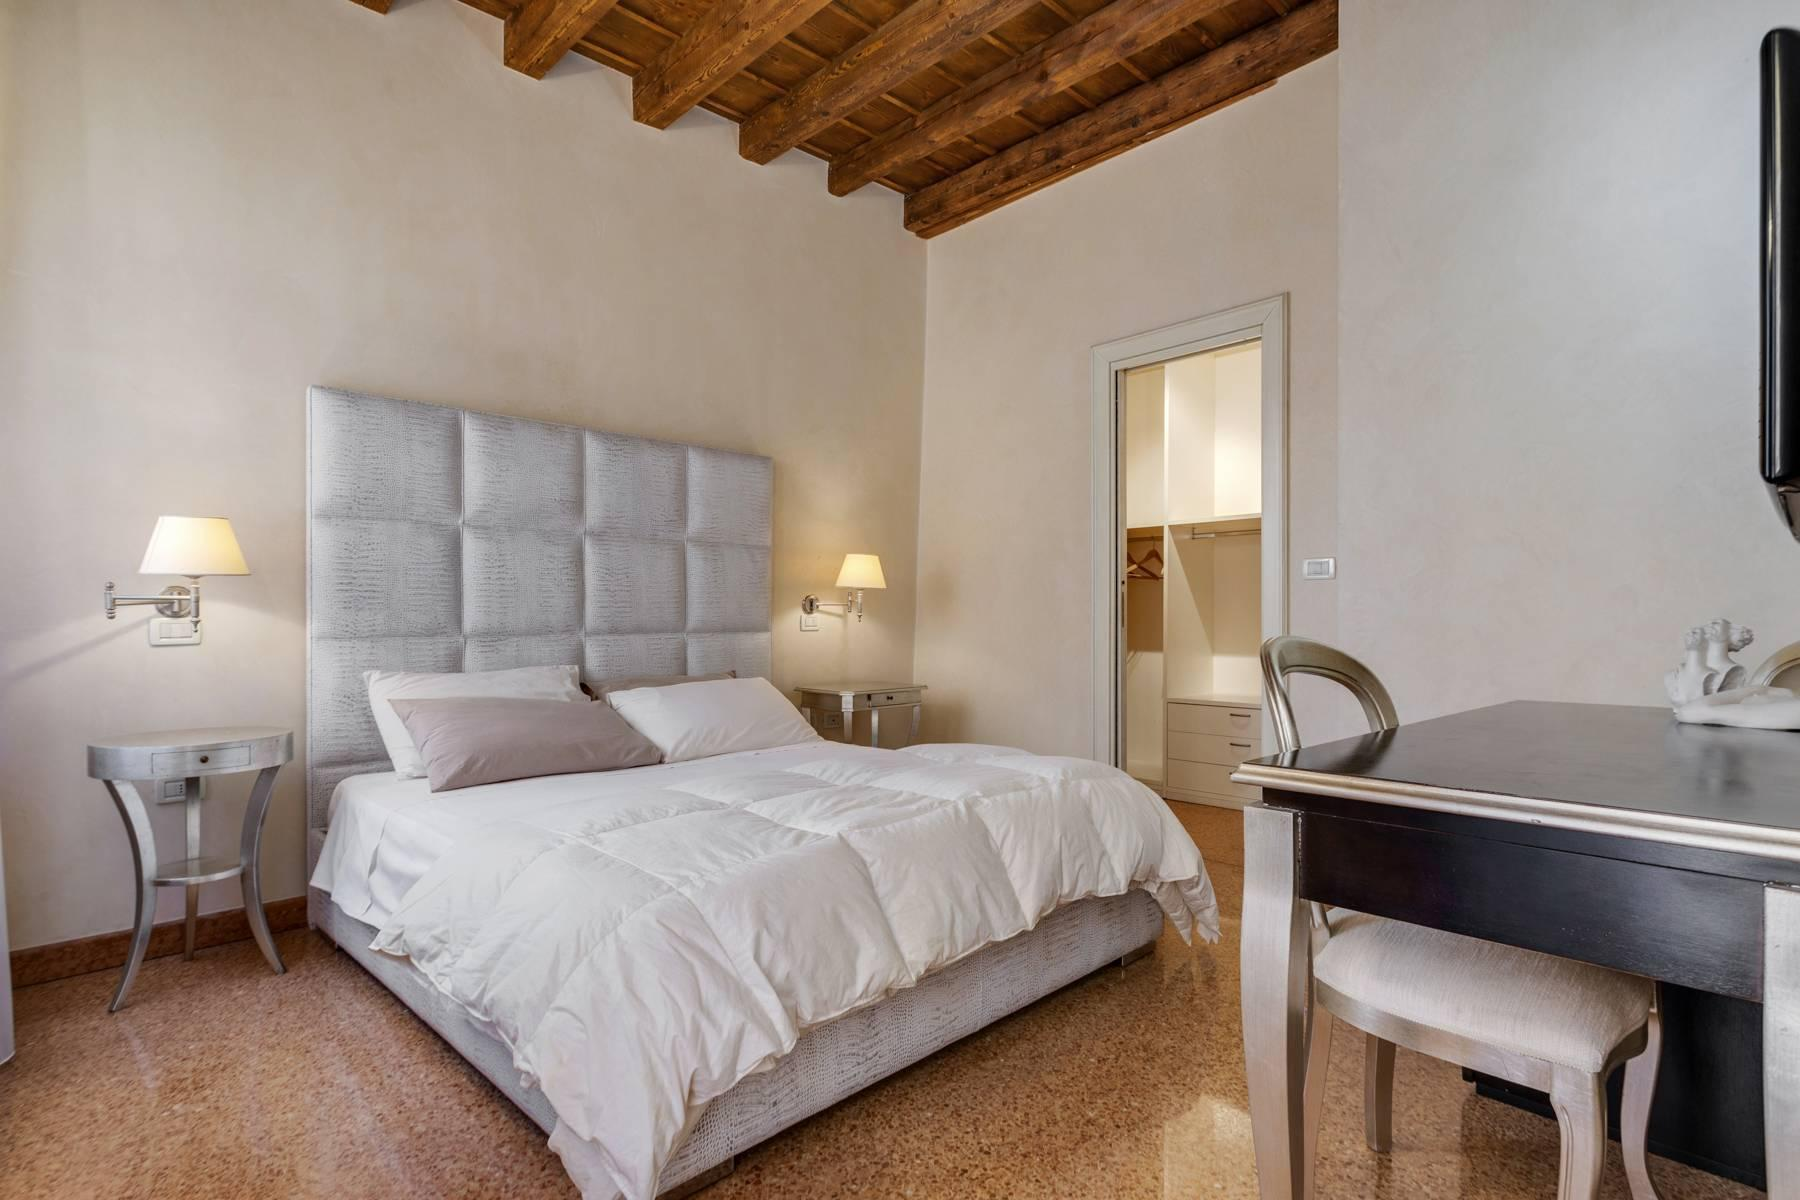 Exquisite apartment just few steps away from Piazza delle Erbe - 8